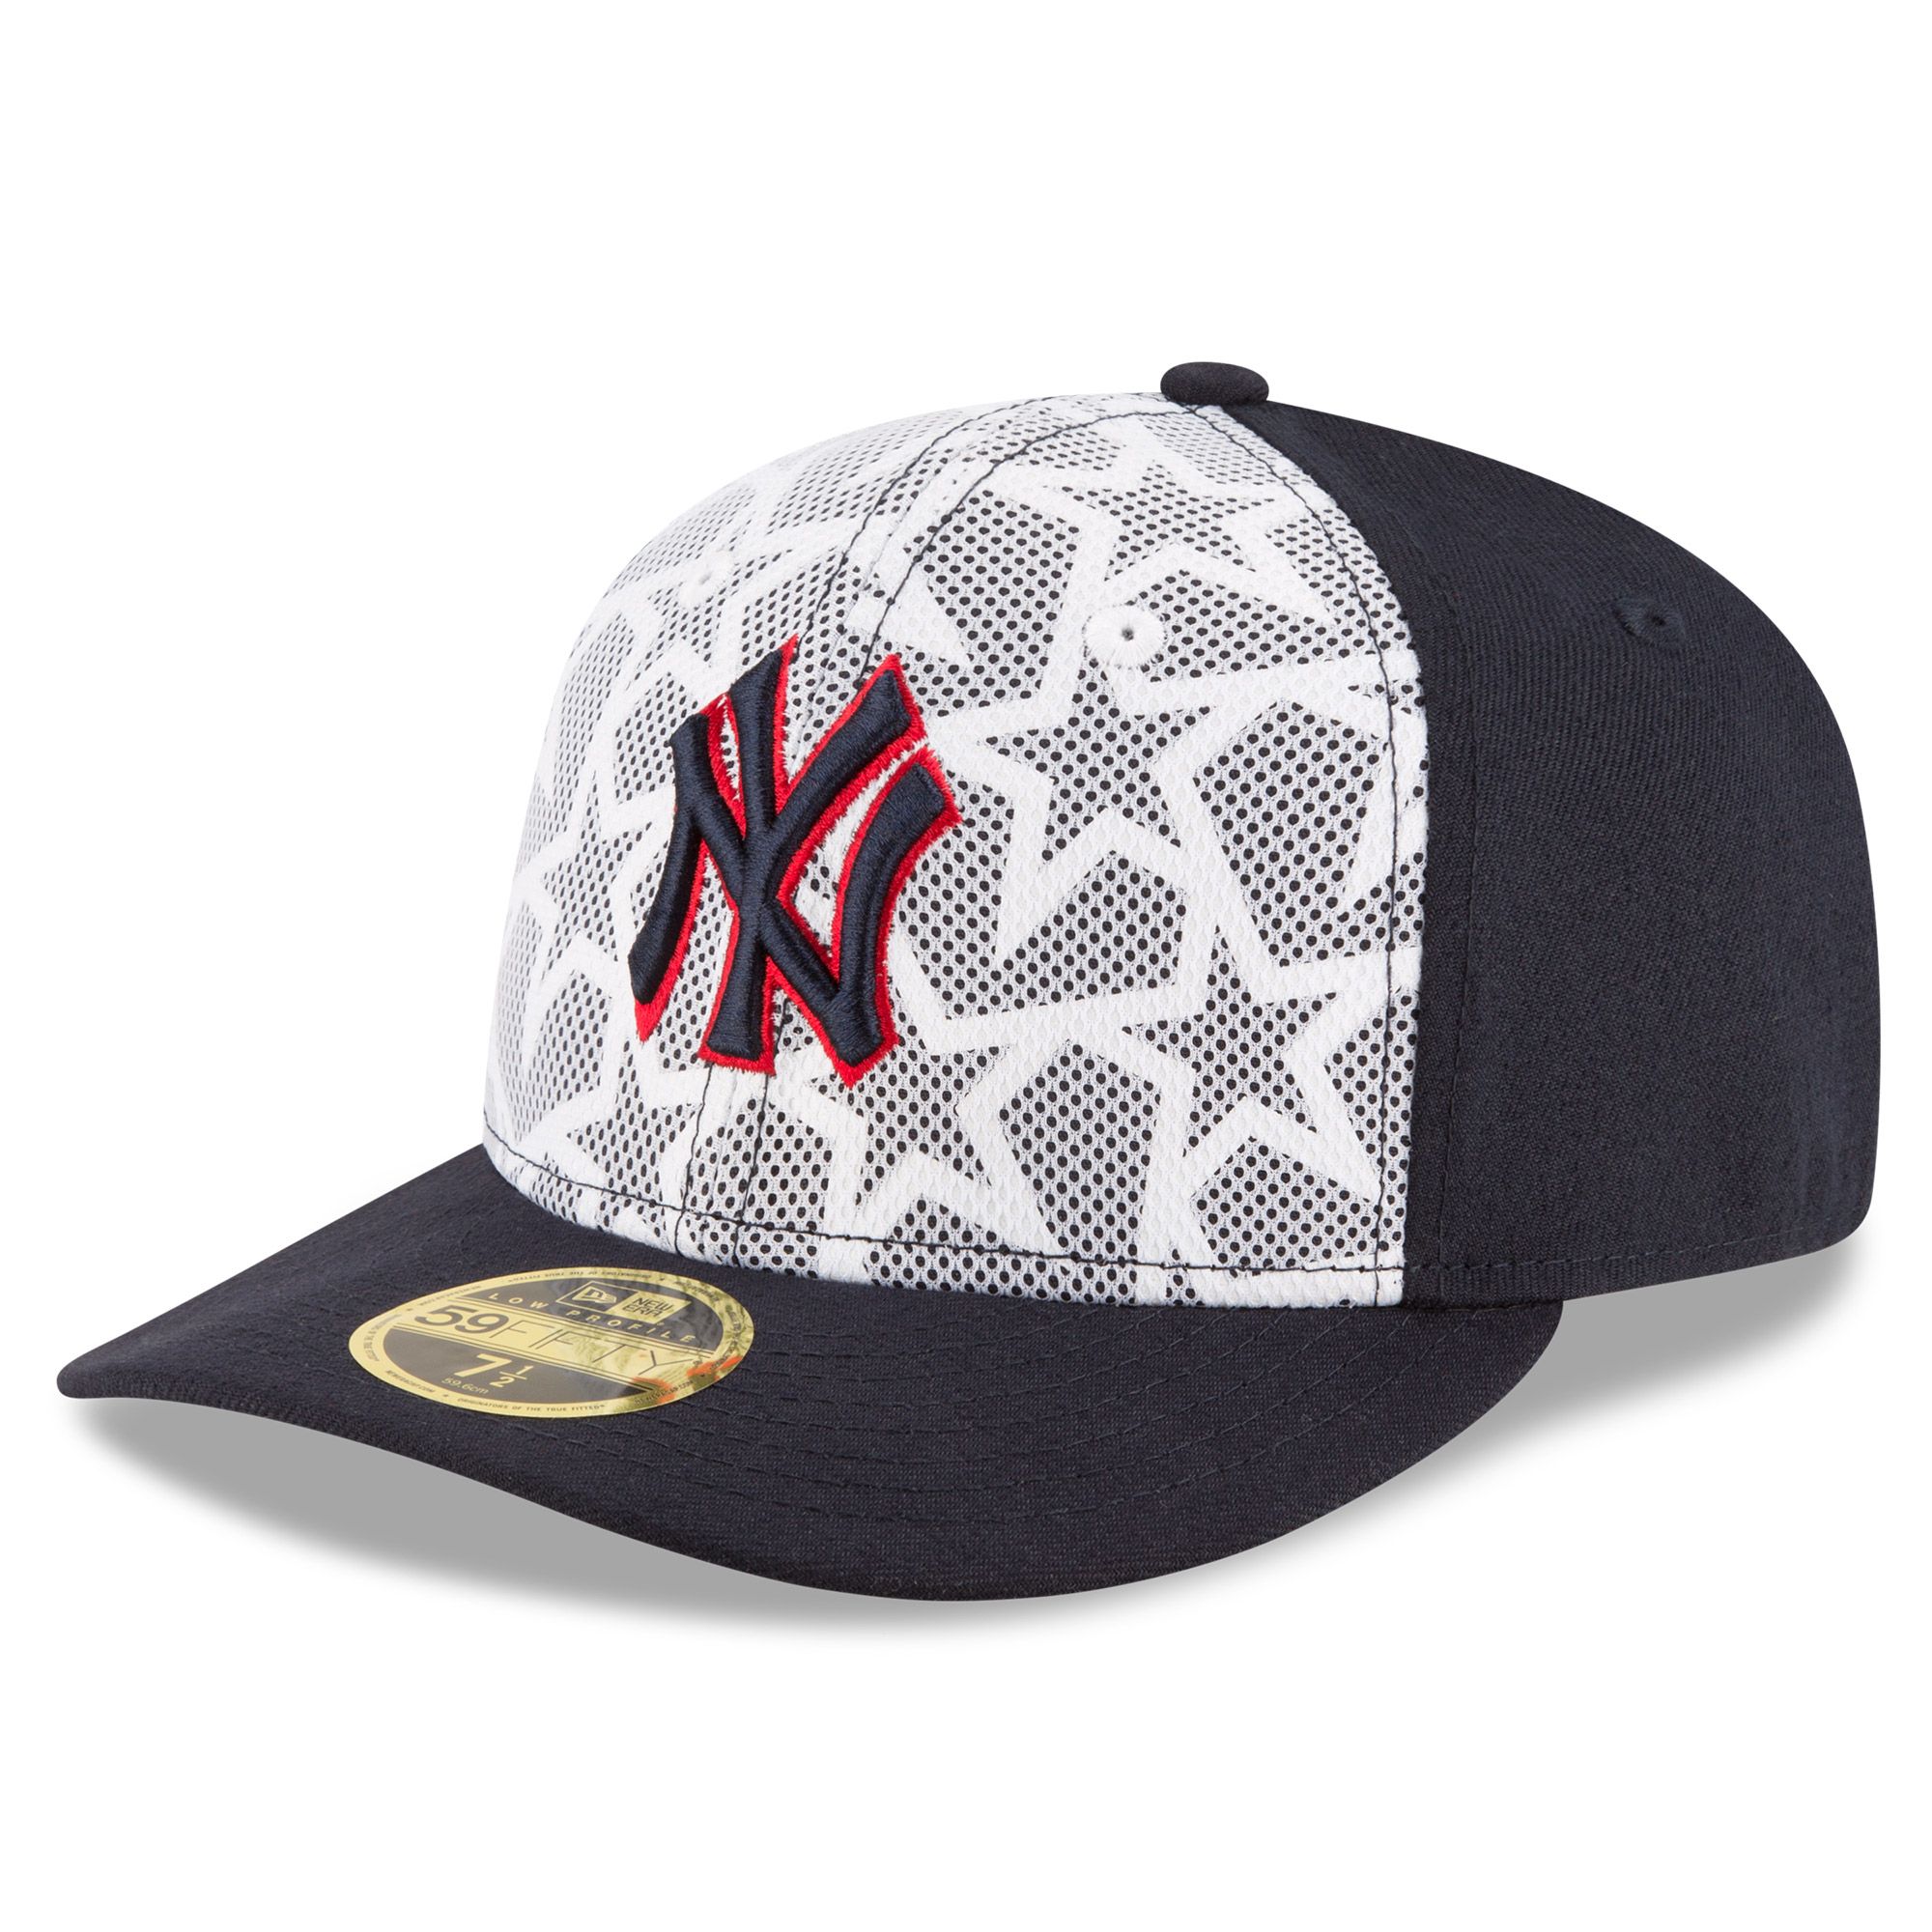 142a8fd68683d ... best price new york yankees new era stars stripes low profile 59fifty  fitted hat white navy